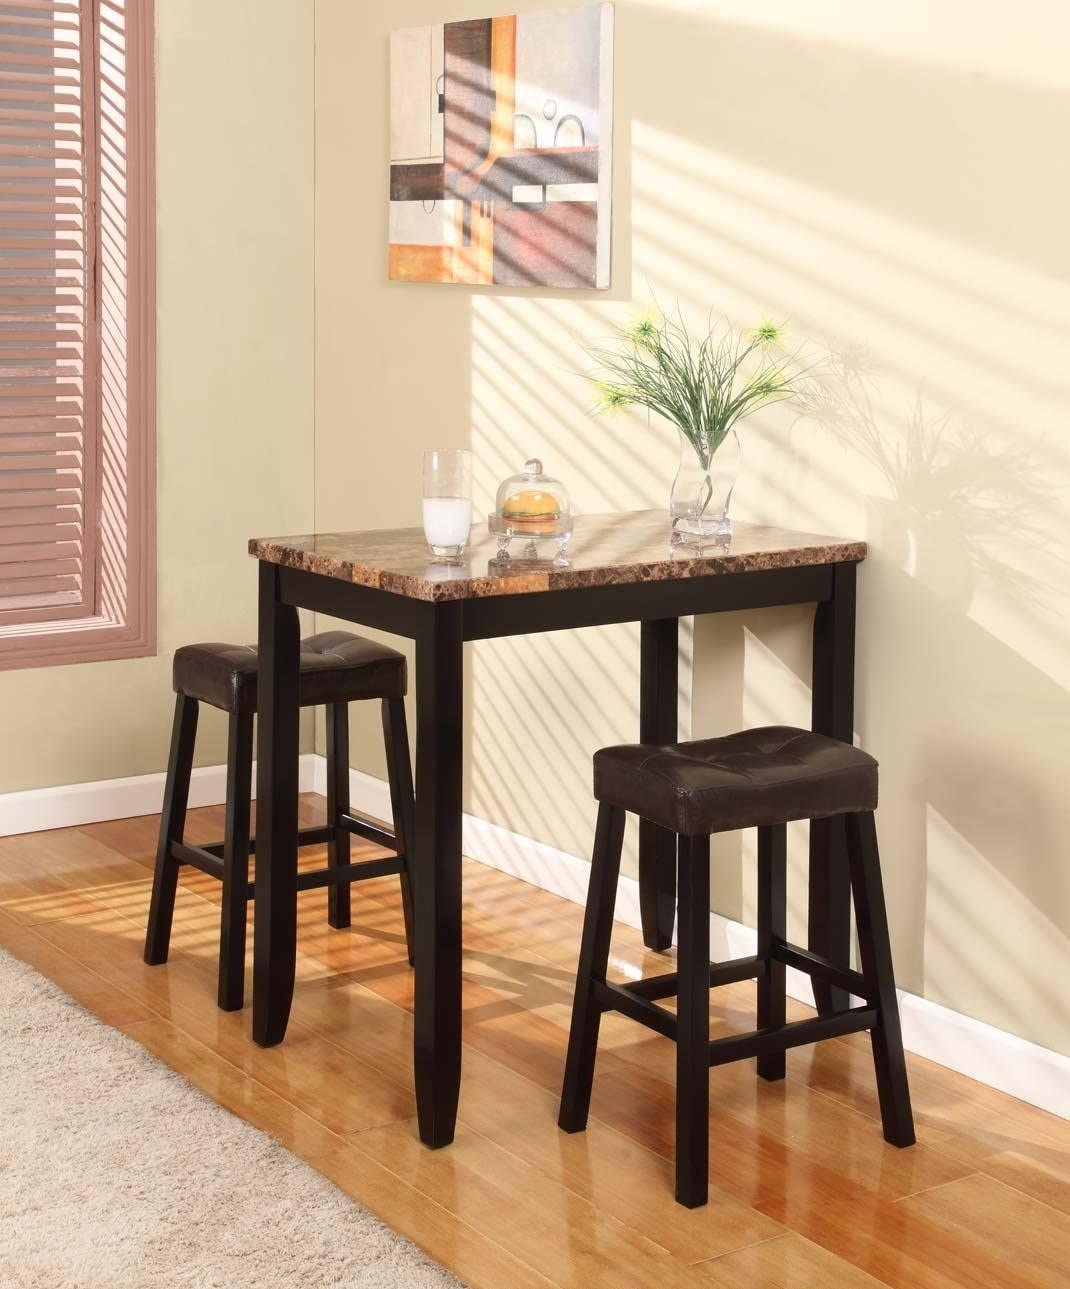 3 Piece Counter Height Pub Table Set : pub table set 3 piece - pezcame.com